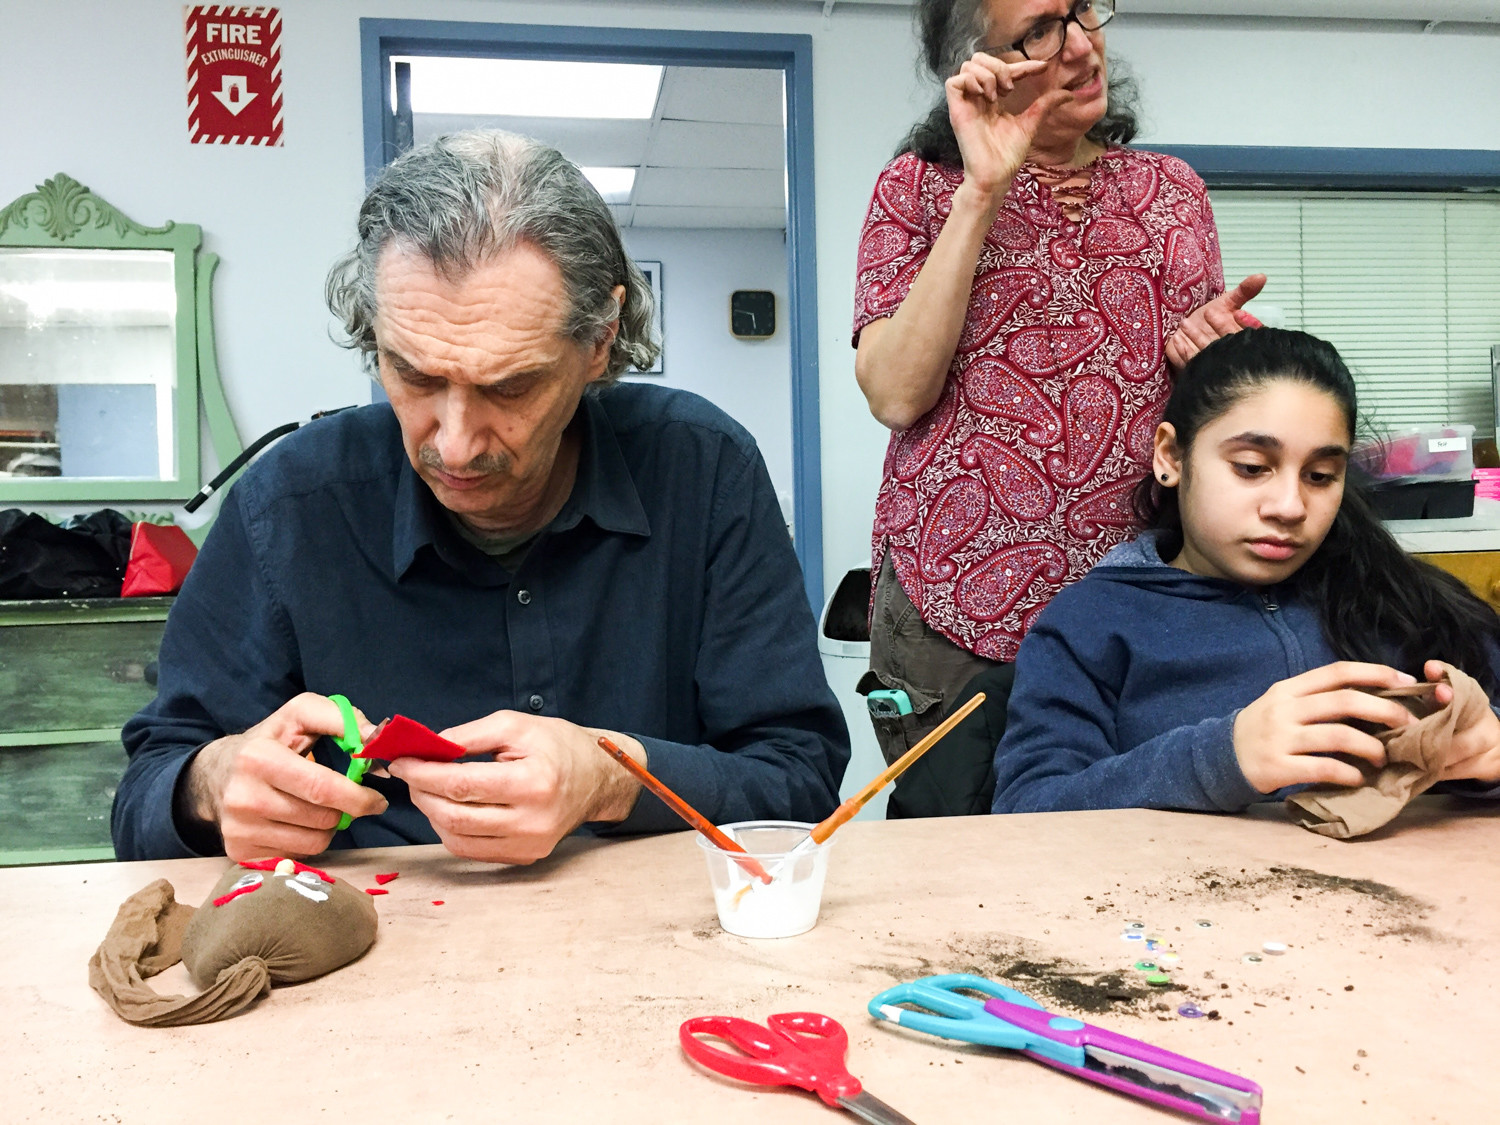 Robert Ackerson and Jillian Ortiz take part in an arts and craft project. The two are part of an inter-generational program between Riverdale Senior Services and Riverdale Community Center, which is looking to bridge the gap between the two generations.